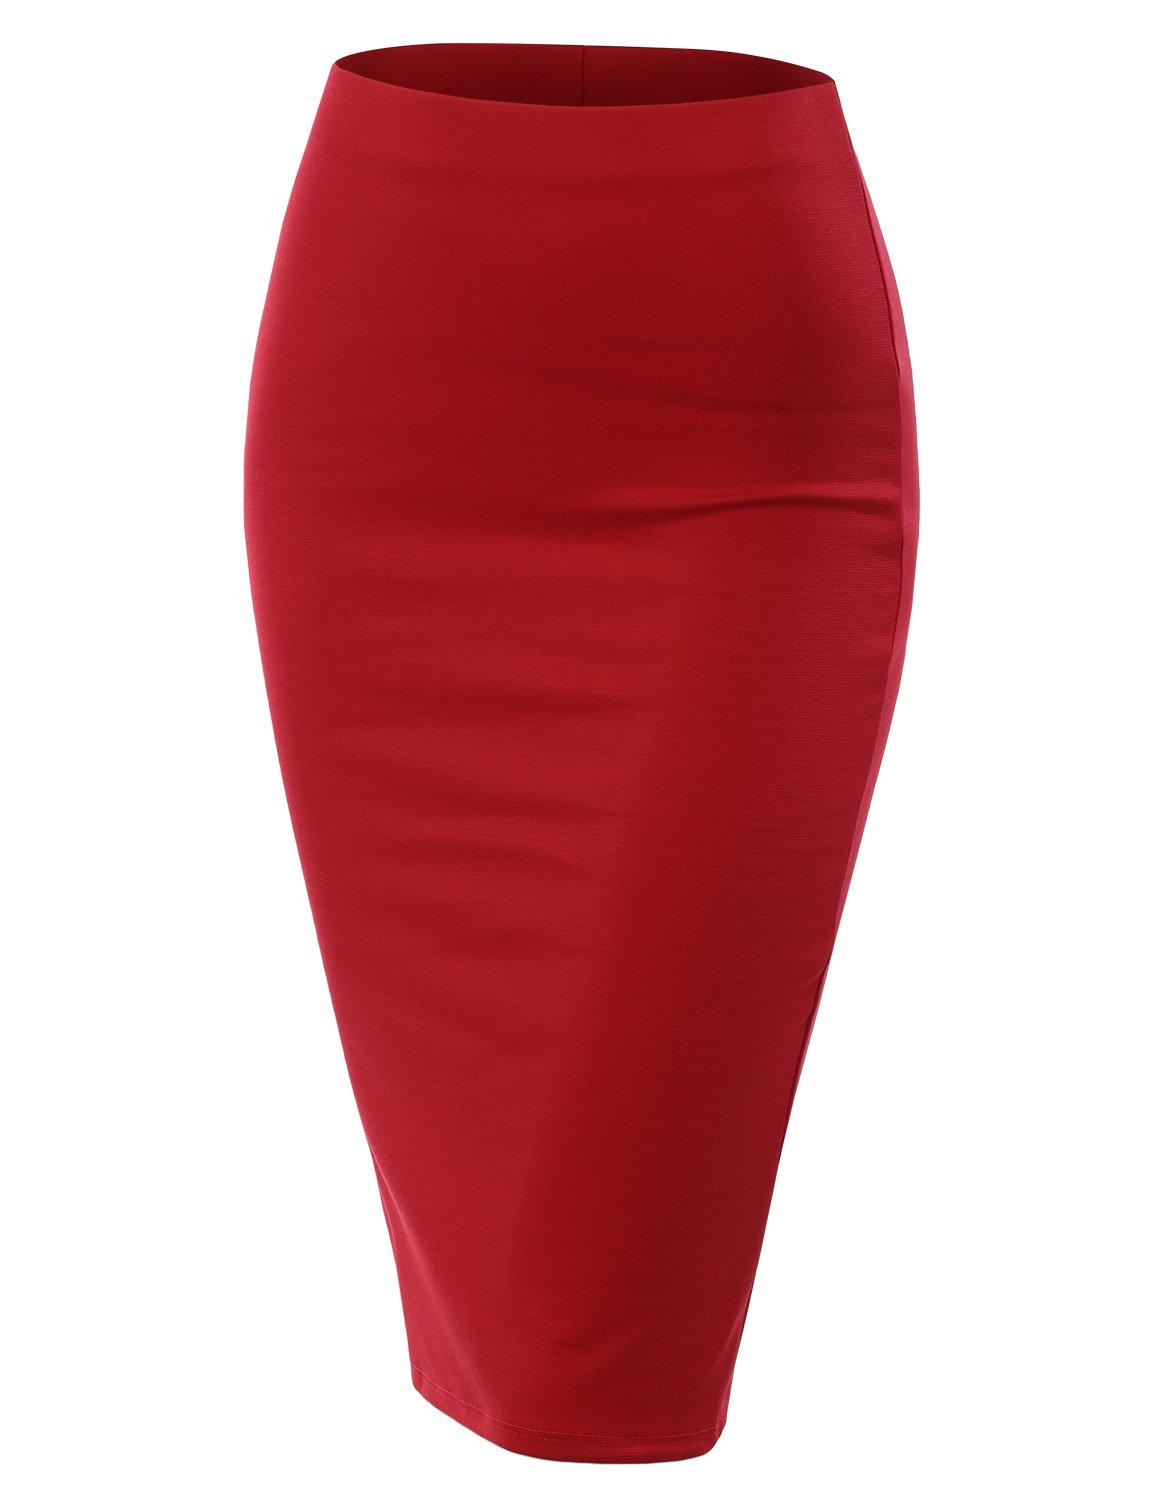 b479e6f4b7 CLOVERY Women's Stretch Knit Midi Bodycon Pencil Back Slit Skirt for Work  Party RED S